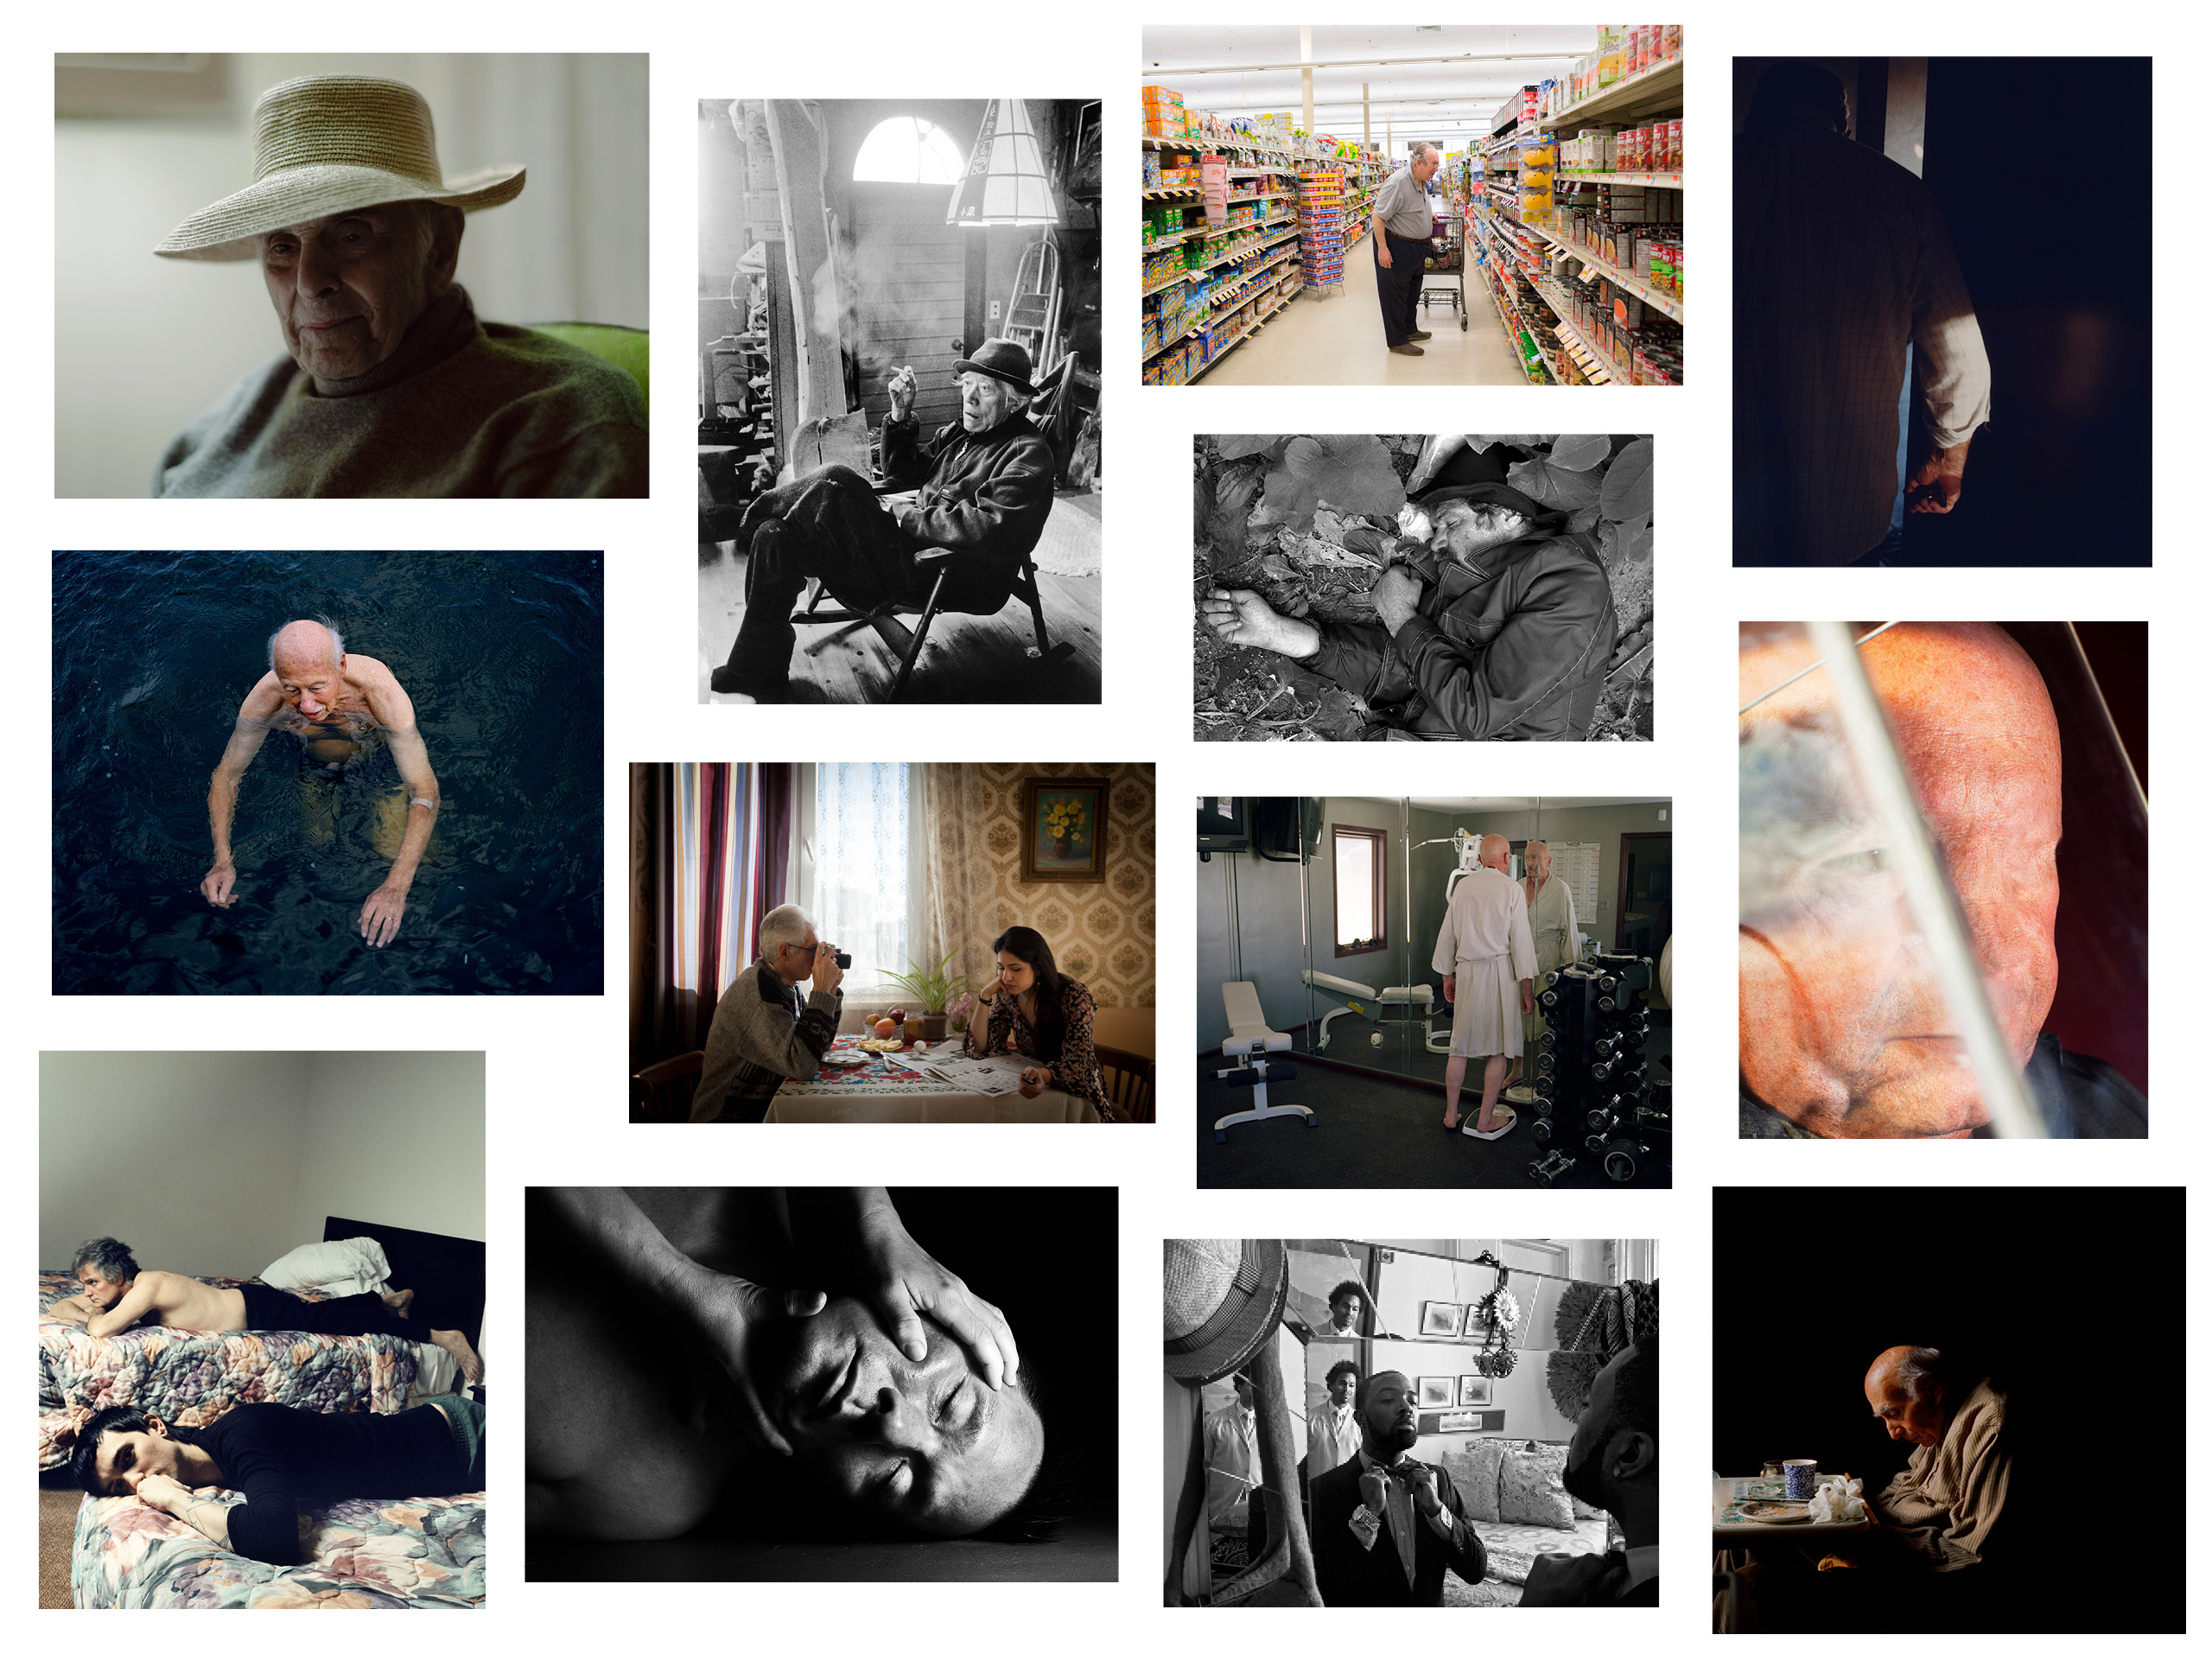 TIME asked 14 photographers who've dedicated themselves to making extensive work about their families to reflect on their experiences photographing their fathers—and to describe which of their own photographs moved them most. Scroll down to see their stories.